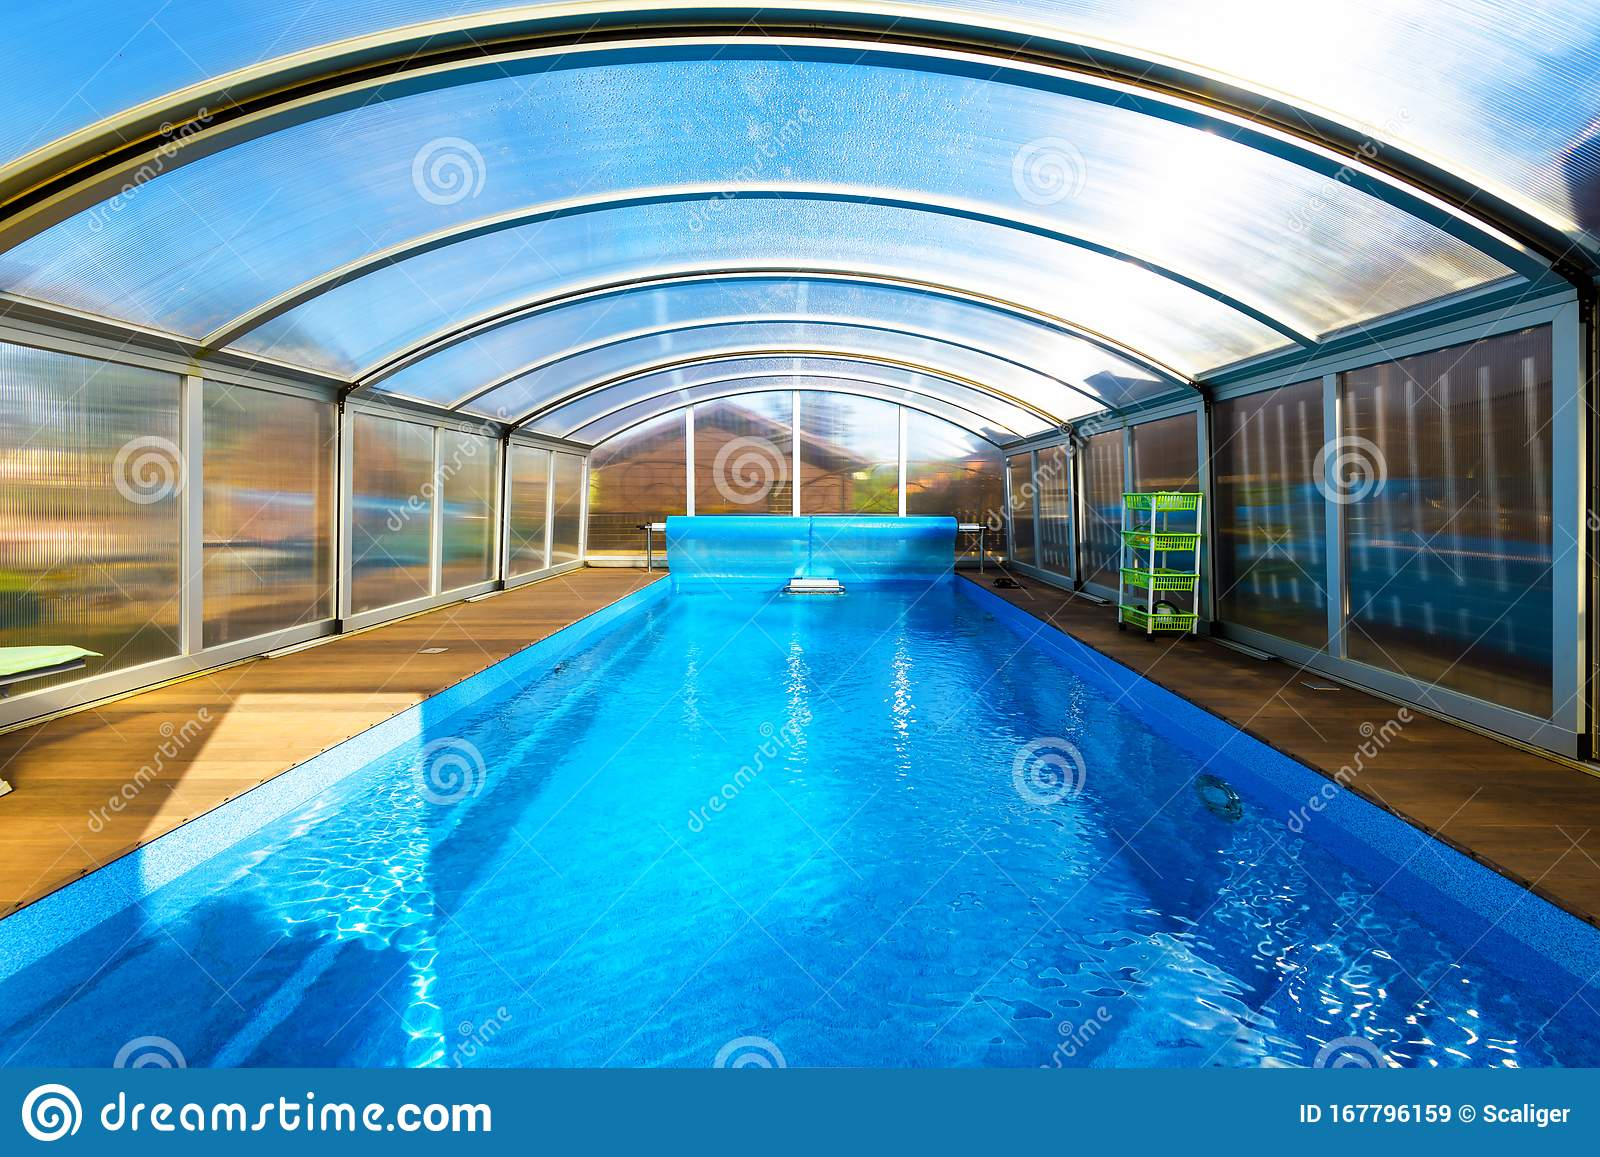 Swimming Pool With Blue Water And Transparent Plastic Tent Modern Pool Design With Collapsible Wall And Ceiling Stock Image Image Of Ceiling Glass 167796159